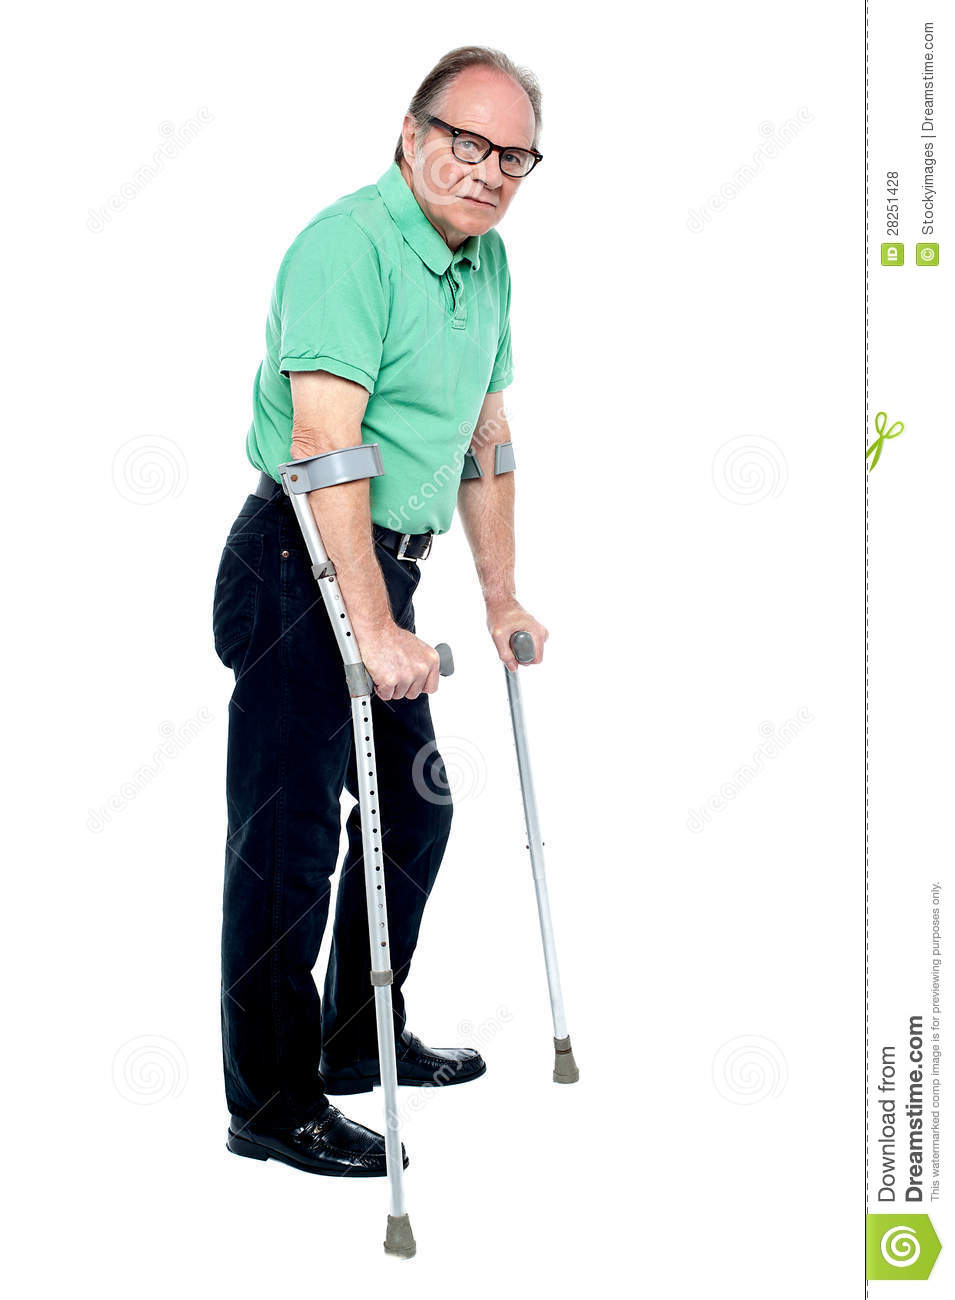 how to hold elderly person walking upstairs